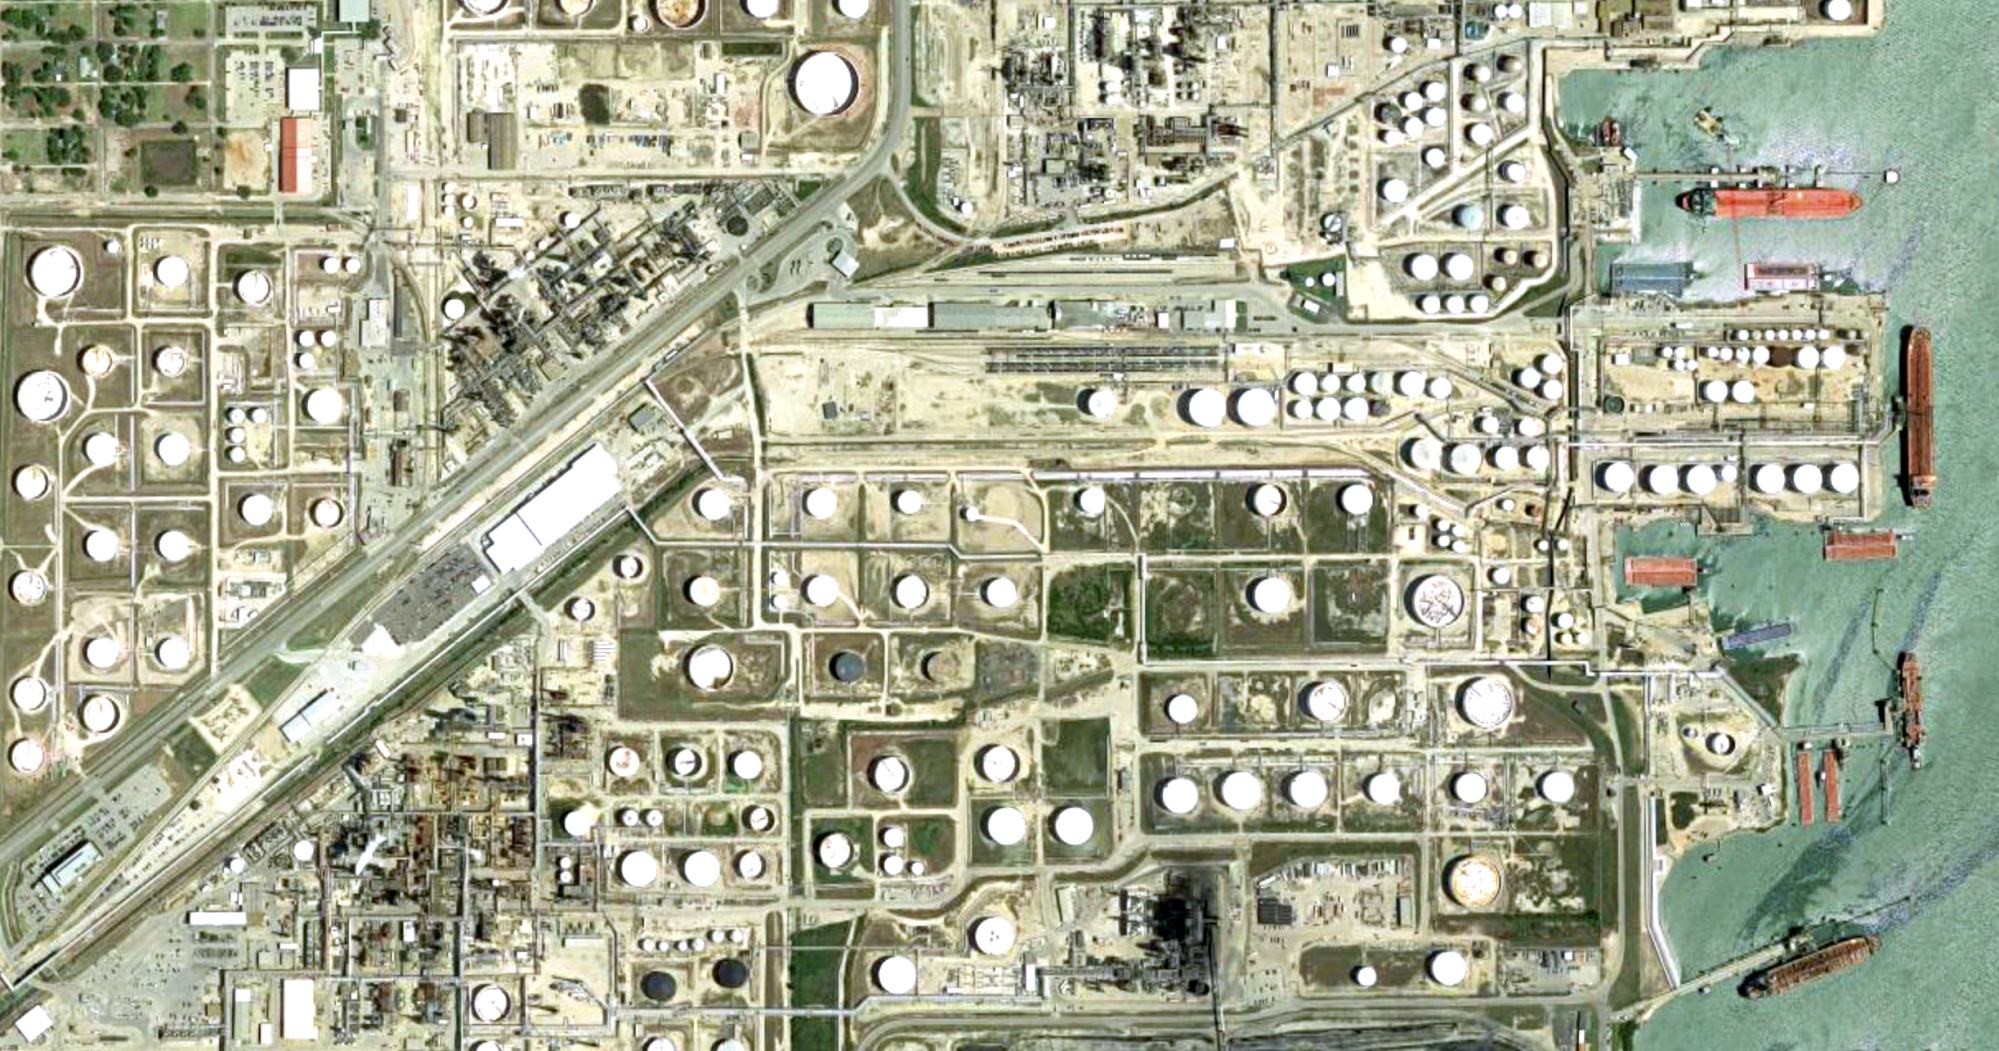 AERIAL VIEW OF THE TEXAS CITY REFINING HUB (COURTESY GOOGLE MAPS)